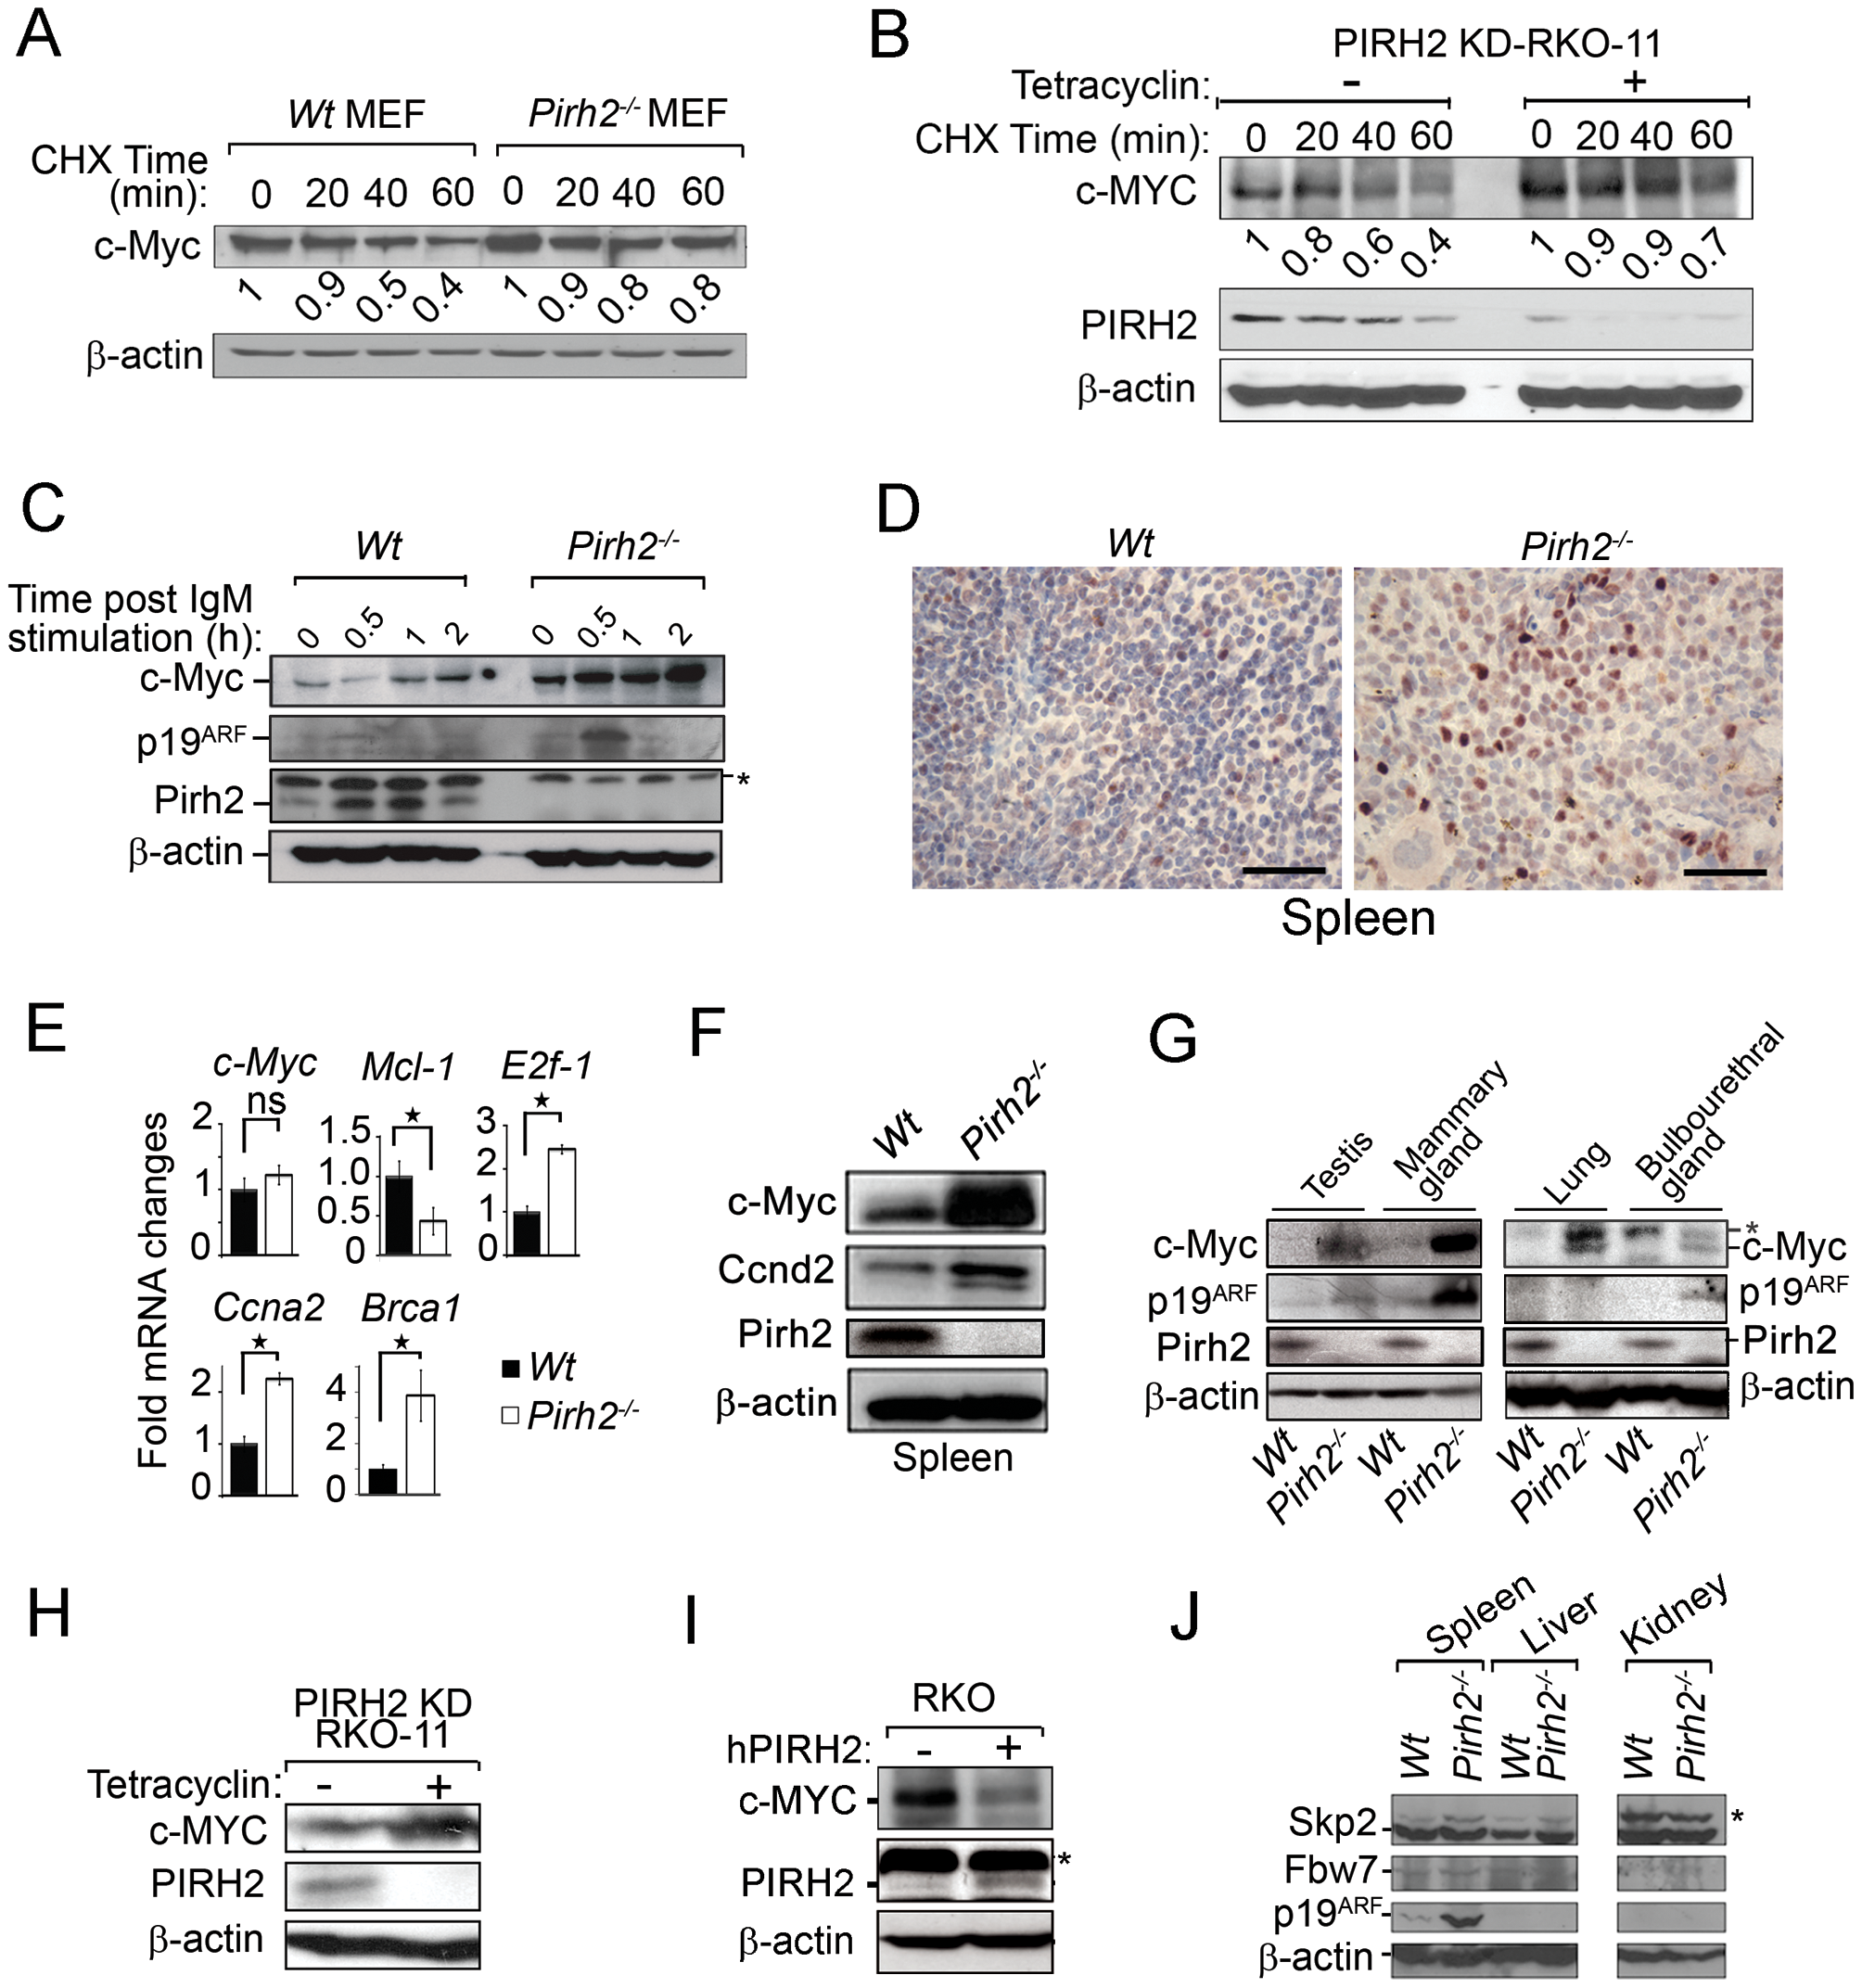 Increased c-Myc Protein Level in <i>Pirh2</i> Mutant Cells and Mice.